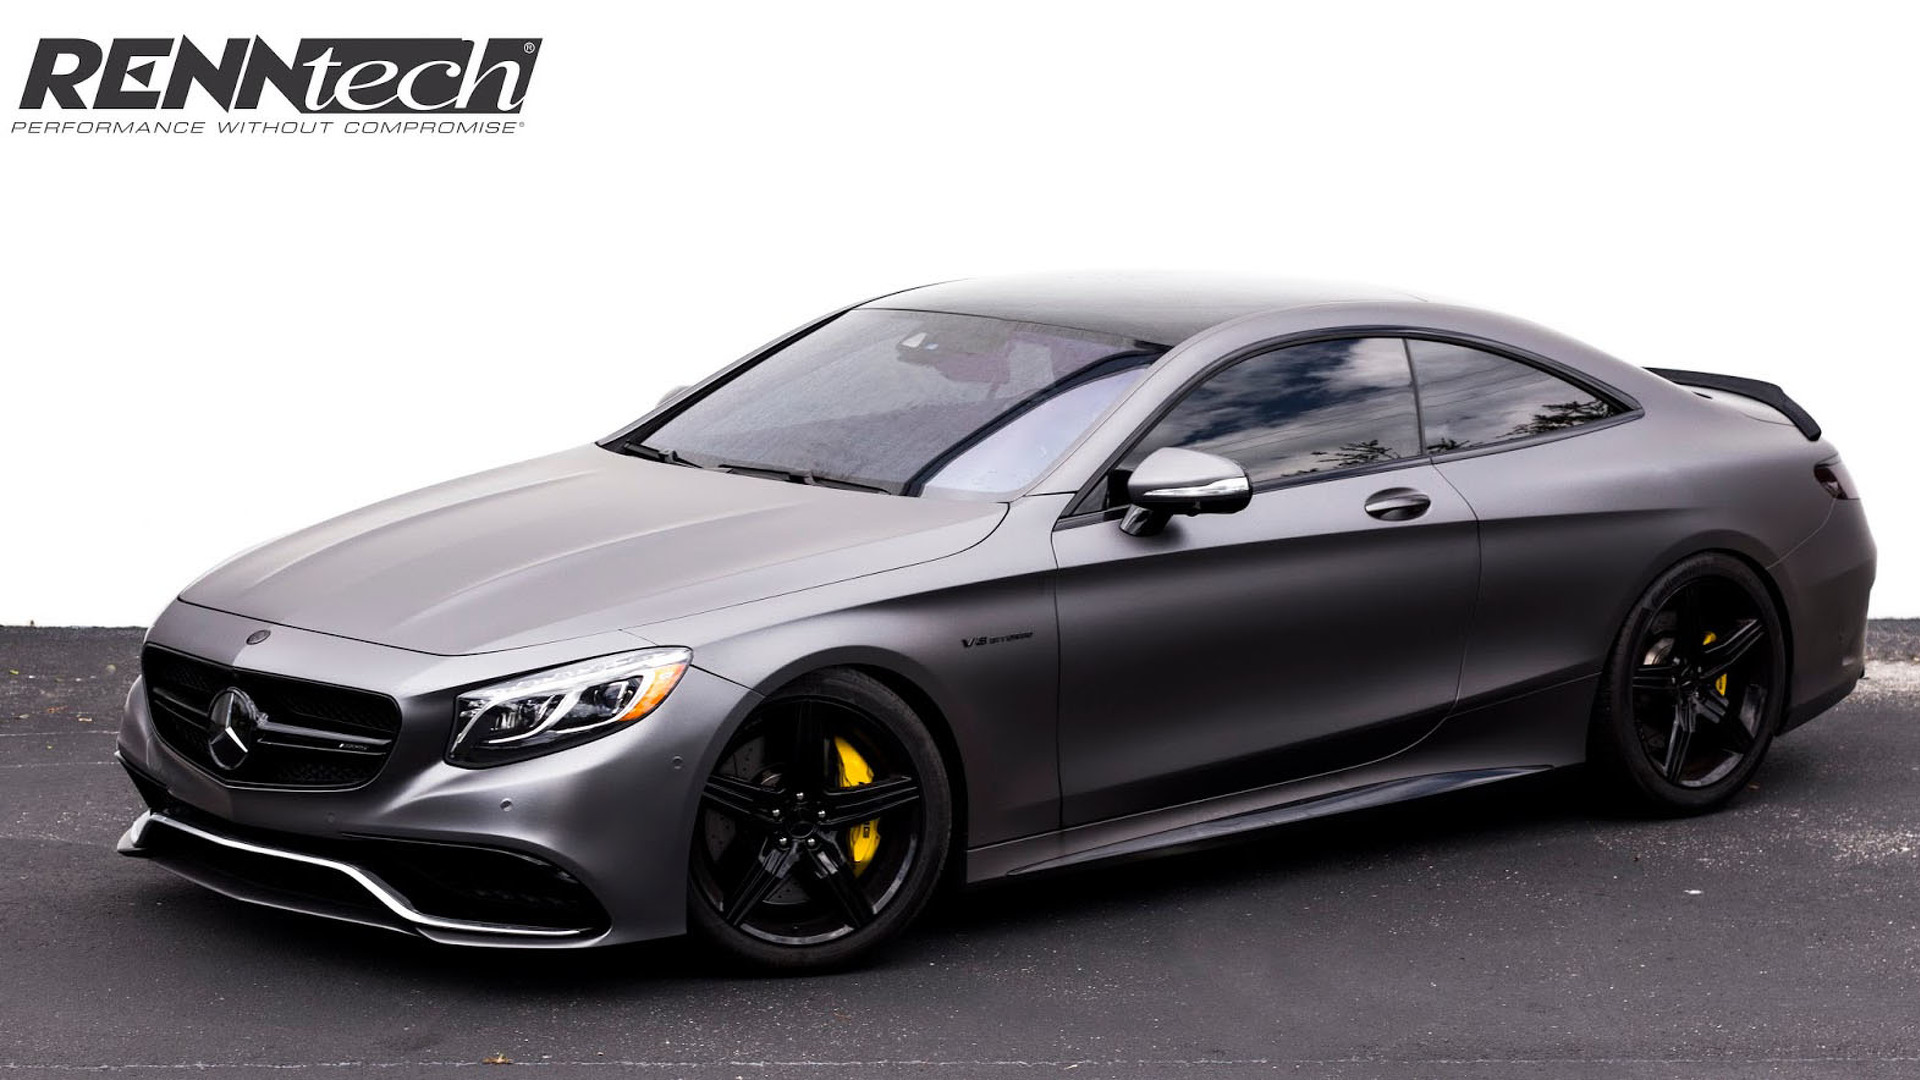 renntech bumps the mercedes s63 amg coupe to 708 hp. Black Bedroom Furniture Sets. Home Design Ideas